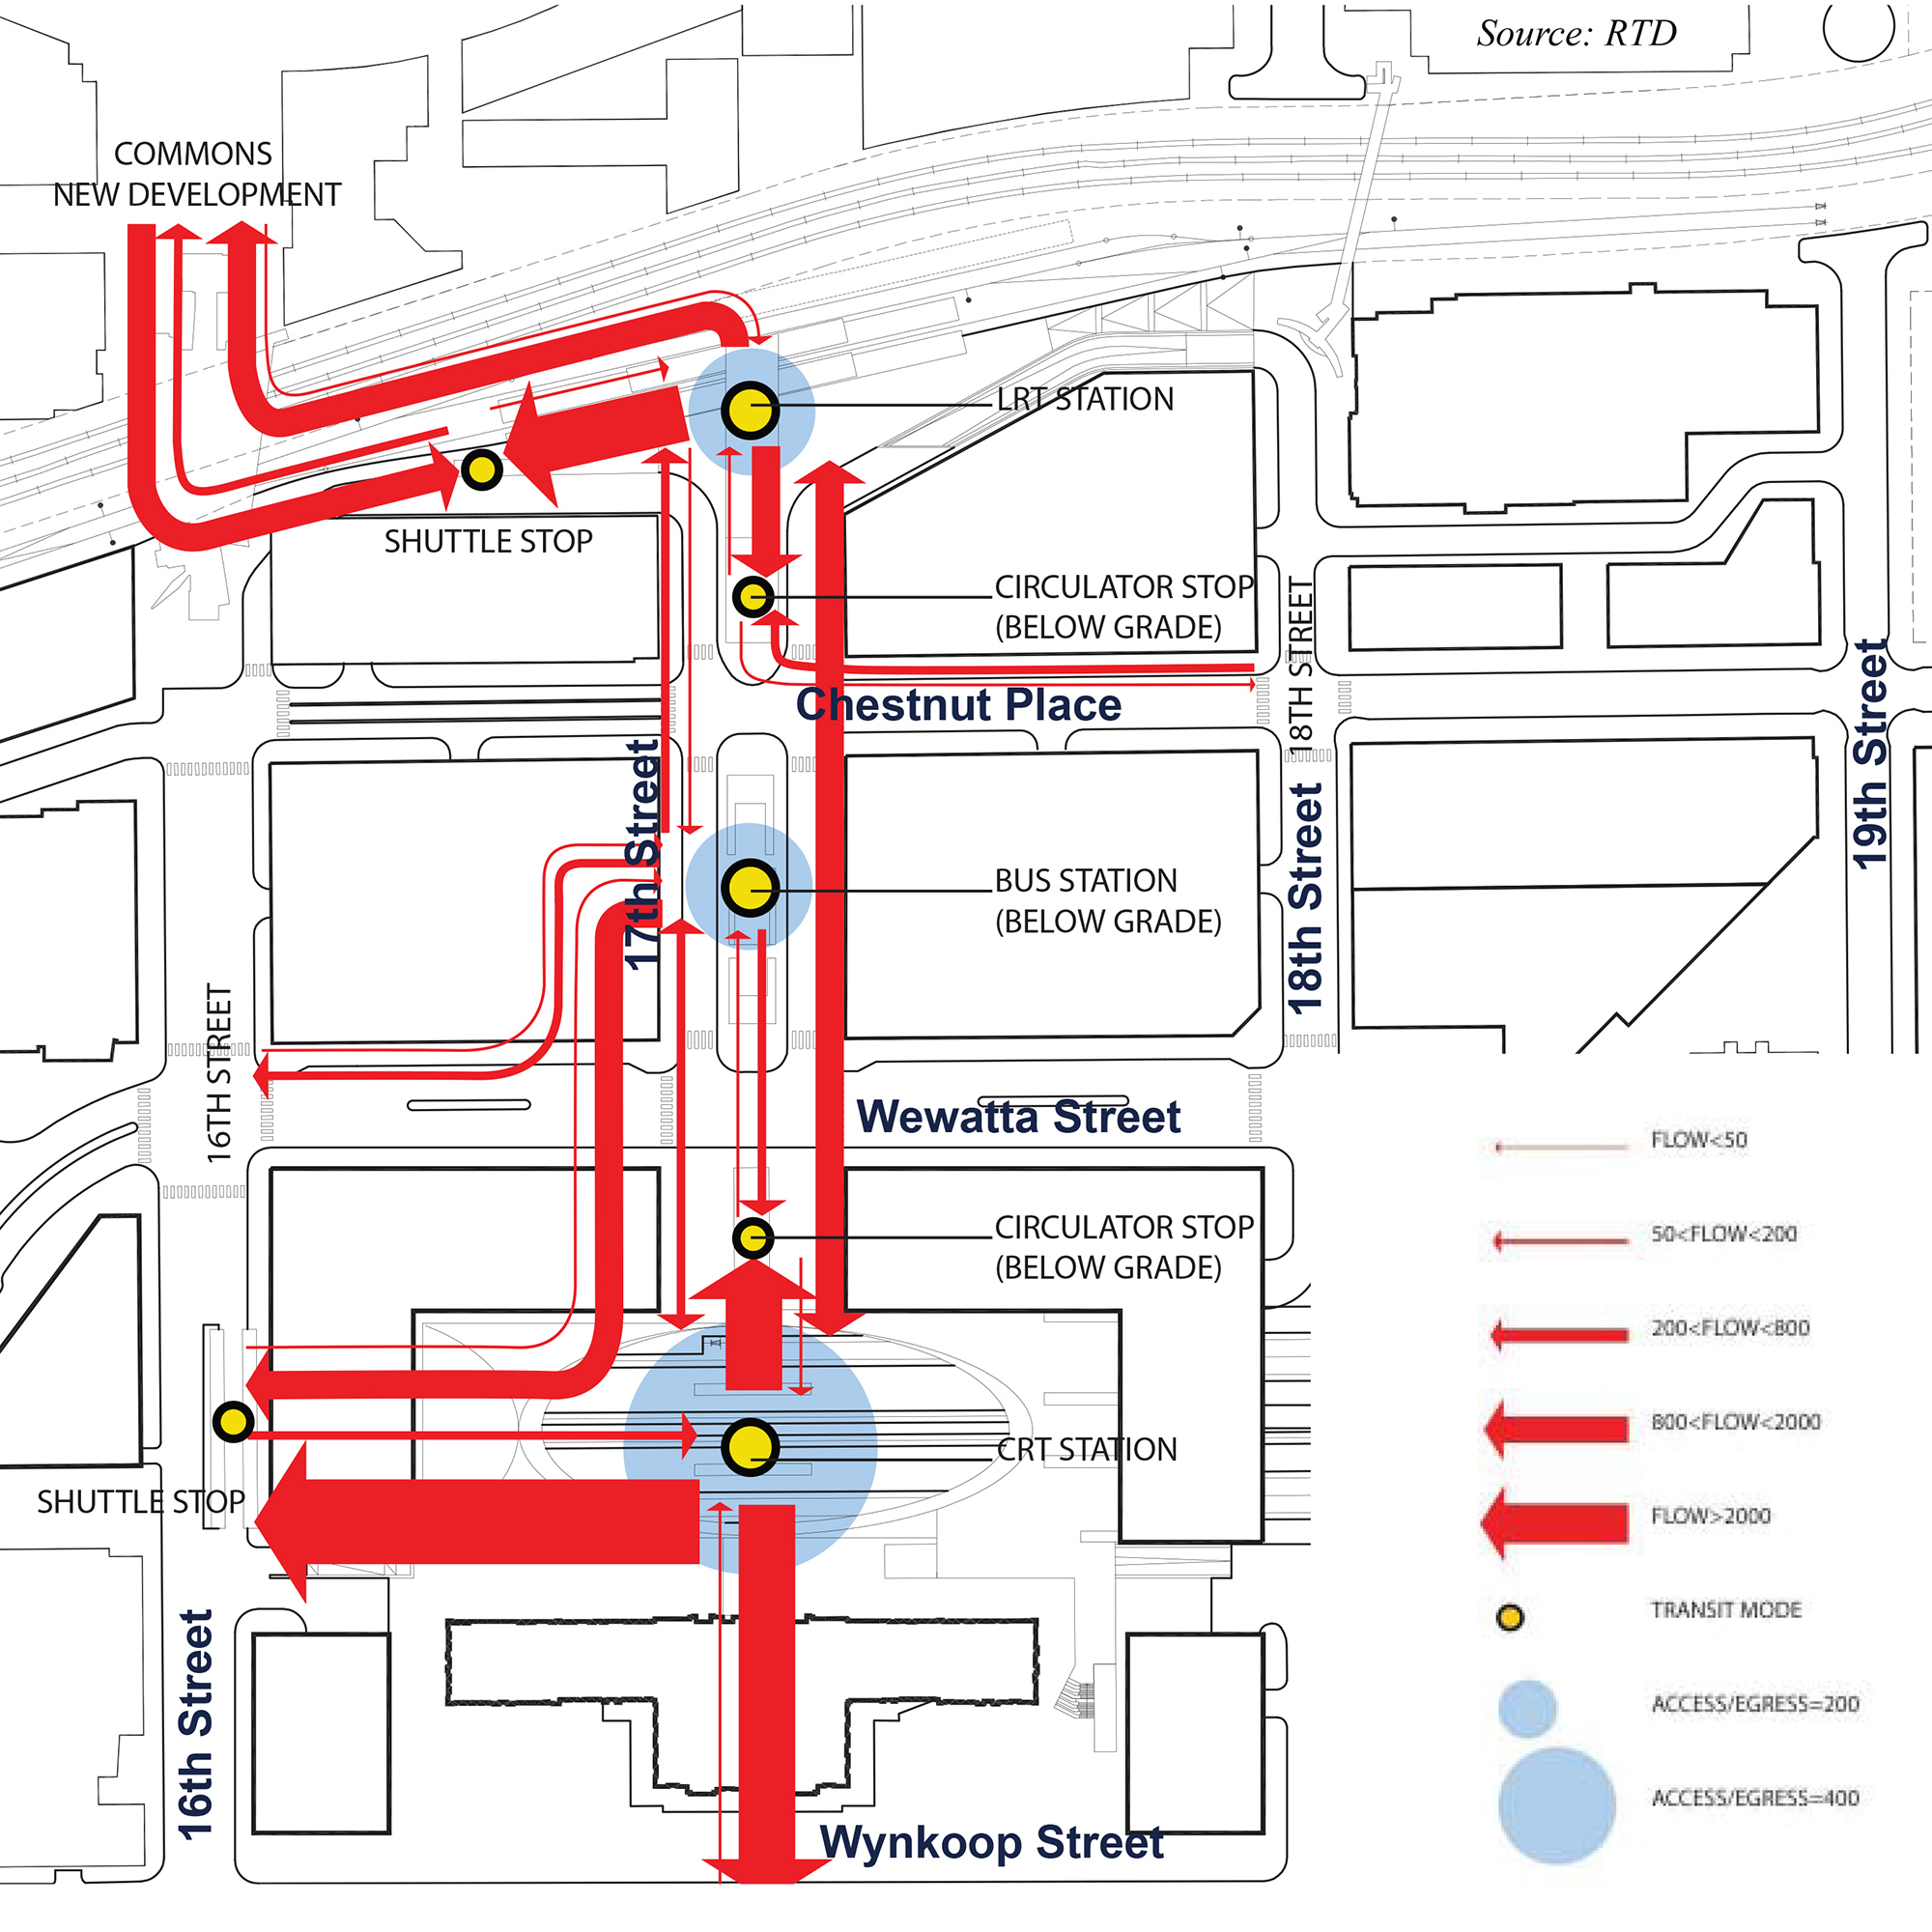 Pedestrian Flow Diagram from the 2008 Denver Union Station Master Plan Update document